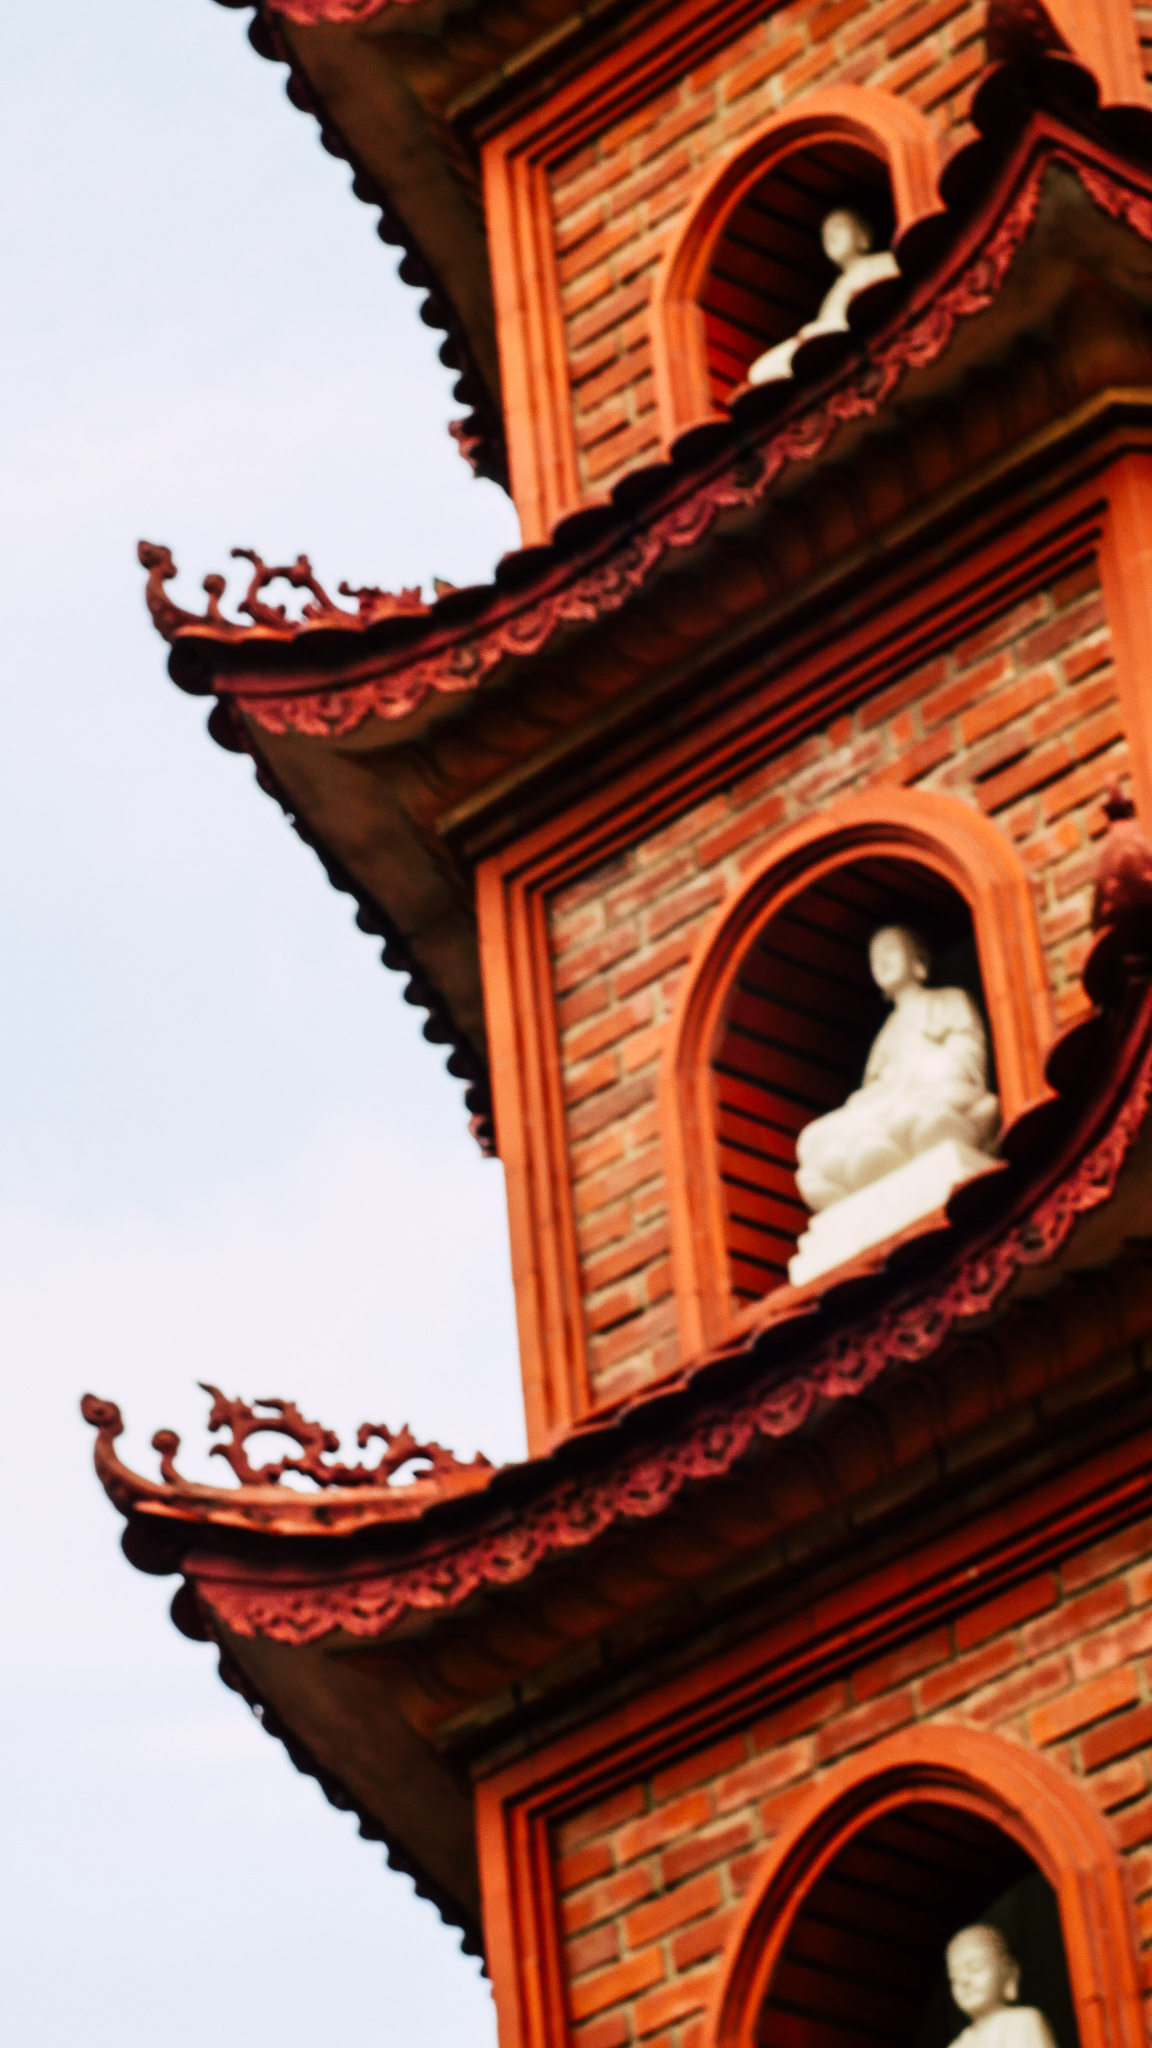 Photo by Alanna Foutz, at the Tran Quoc Pagoda